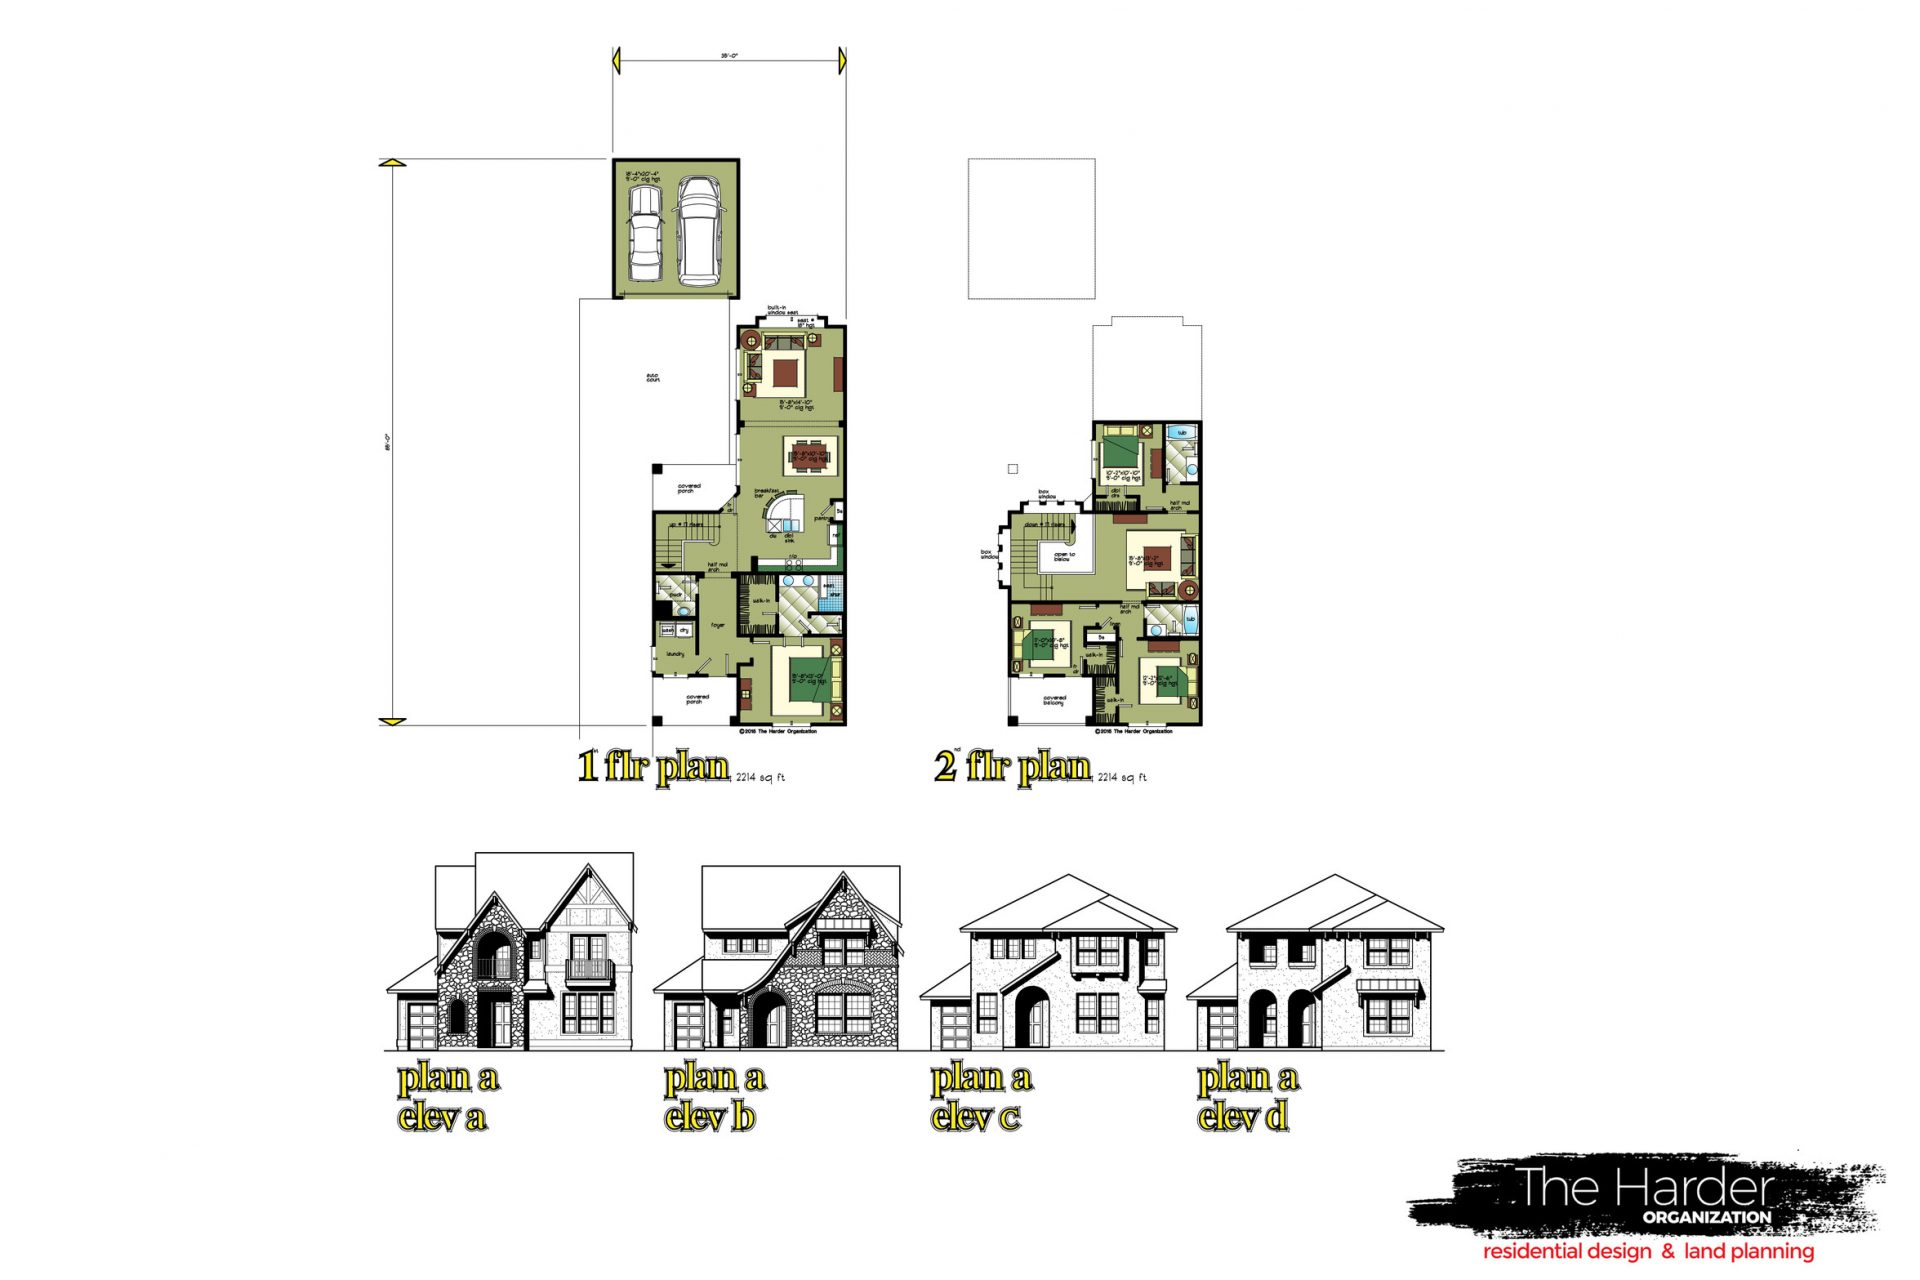 J:(Drawings)Meridian homesdetached gar site plan conceptdeta